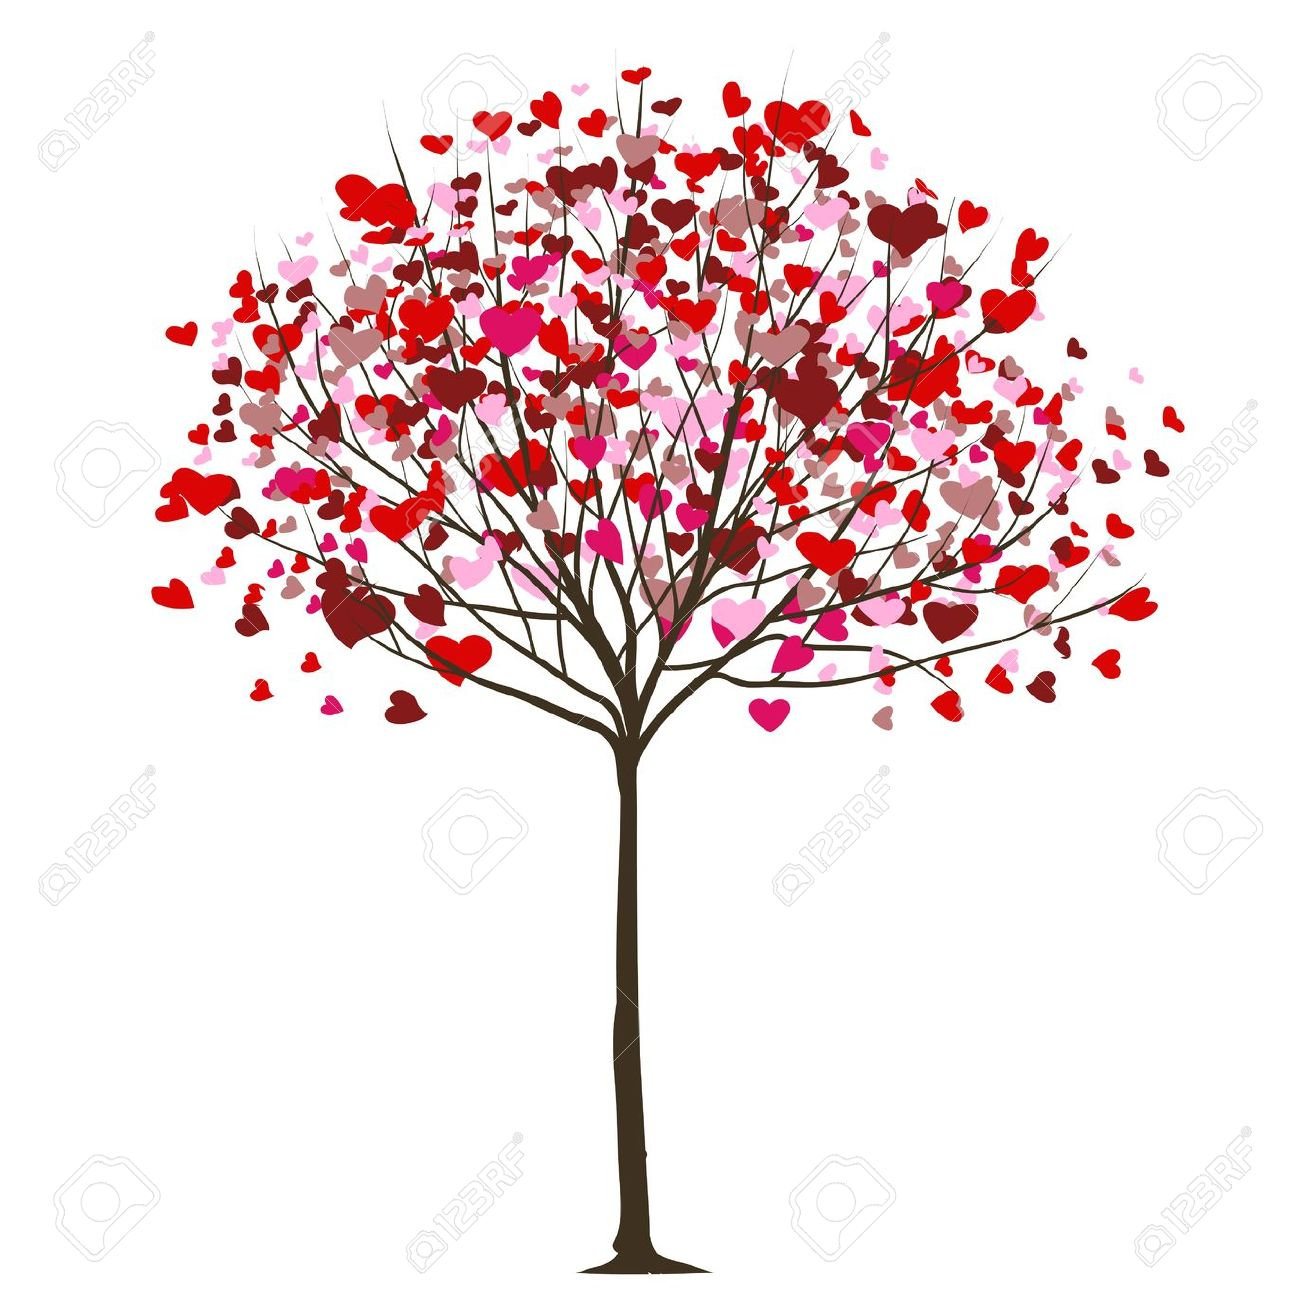 February hearts clip art graphic black and white download Valentine Tree With Hearts Royalty Free Cliparts, Vectors, And ... graphic black and white download